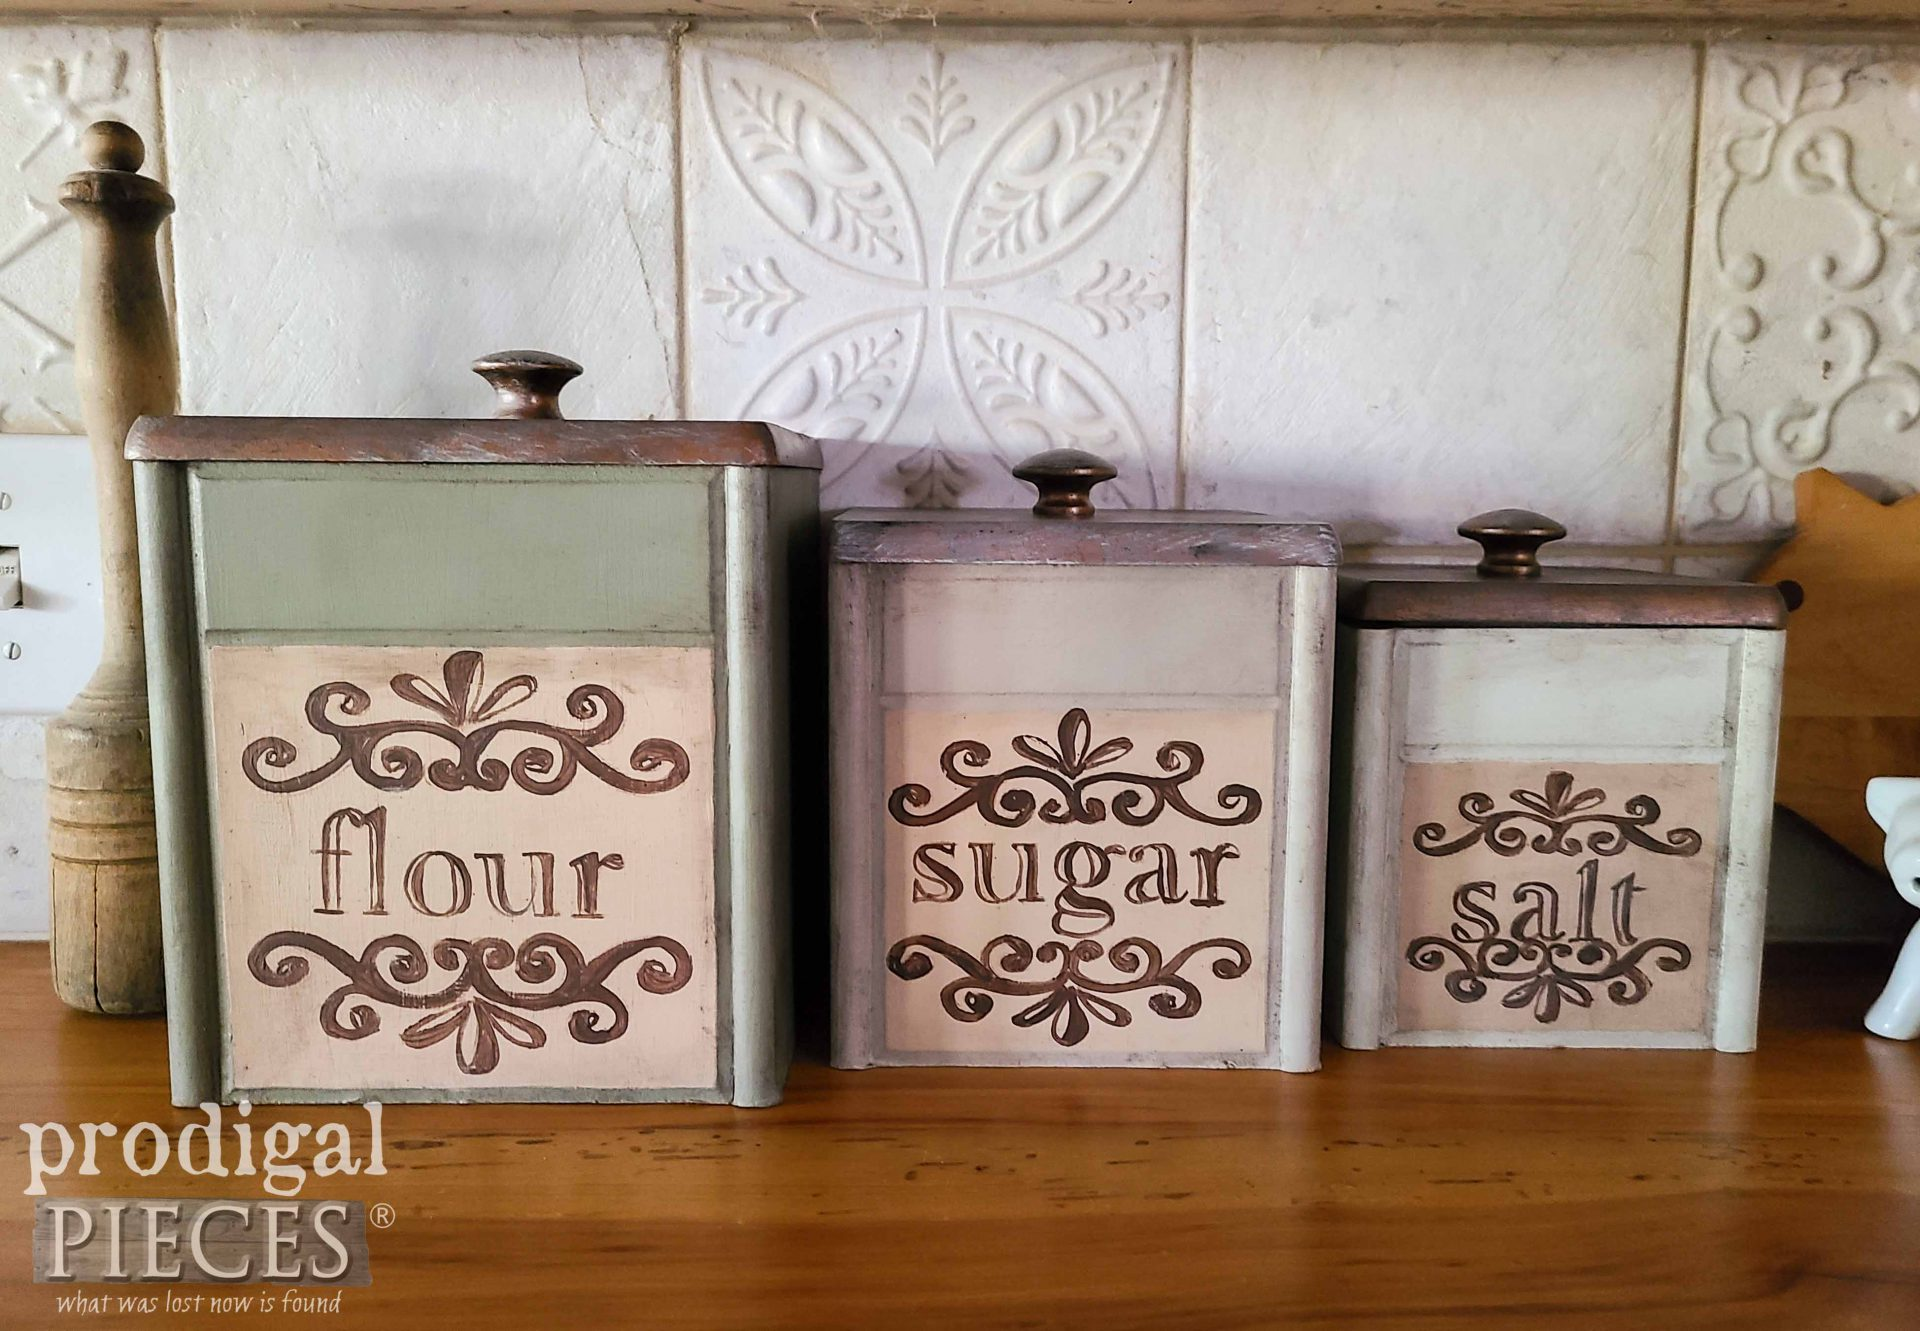 Vintage Style Thrifted Kitchen Canisters by Larissa of Prodigal Pieces | prodigalpieces.com #prodigalpieces #vintage #kitchen #home #homedecor